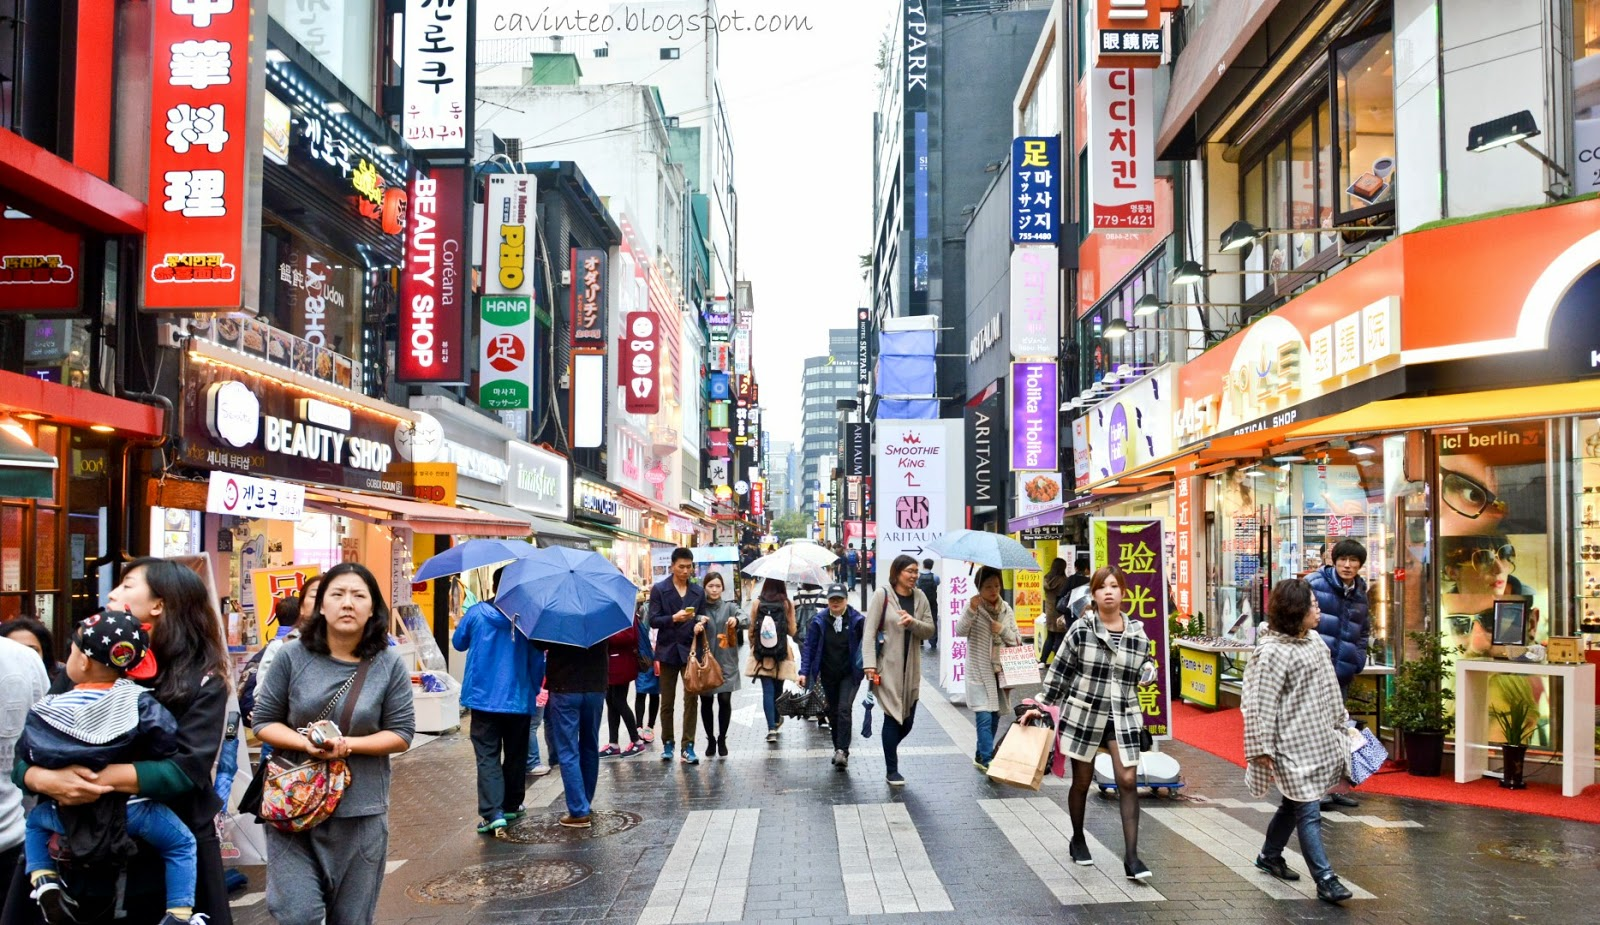 Image result for Myeong-dong korea famous street